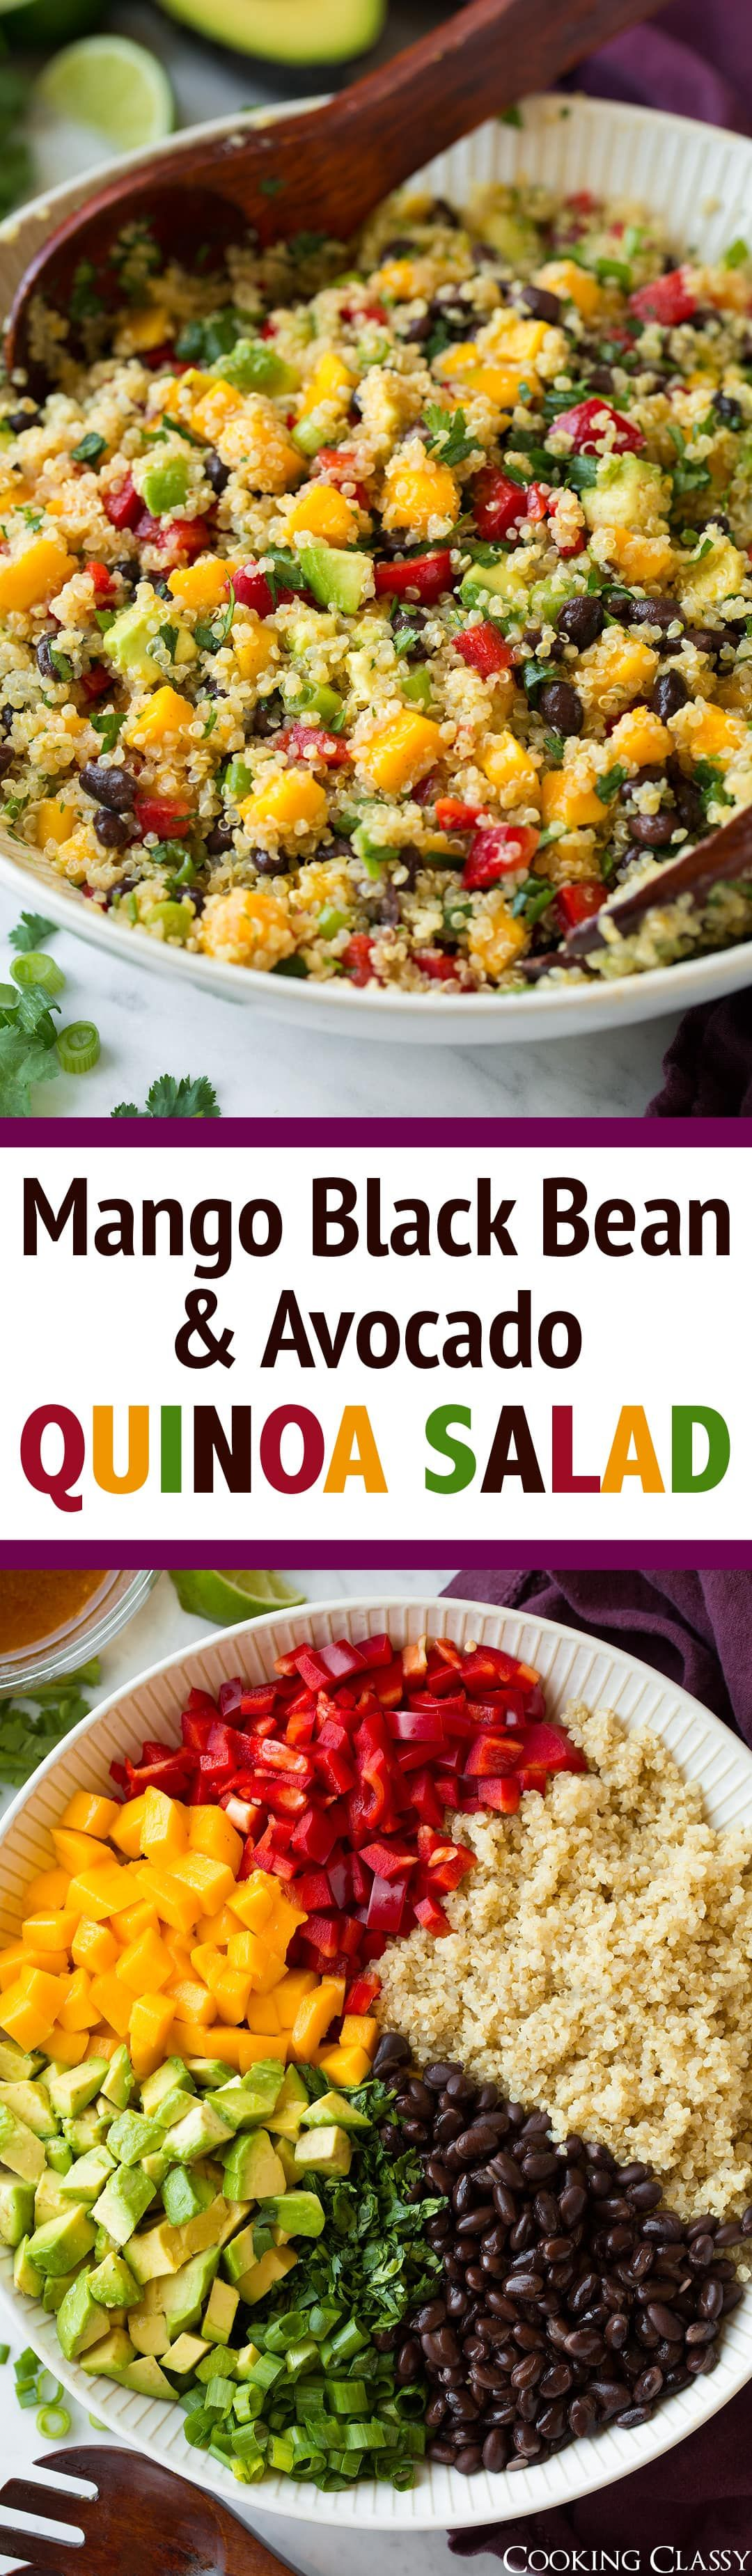 The BEST Quinoa Salad - it's bursting with fresh Mexican flavors and loaded with veggies! A recipe